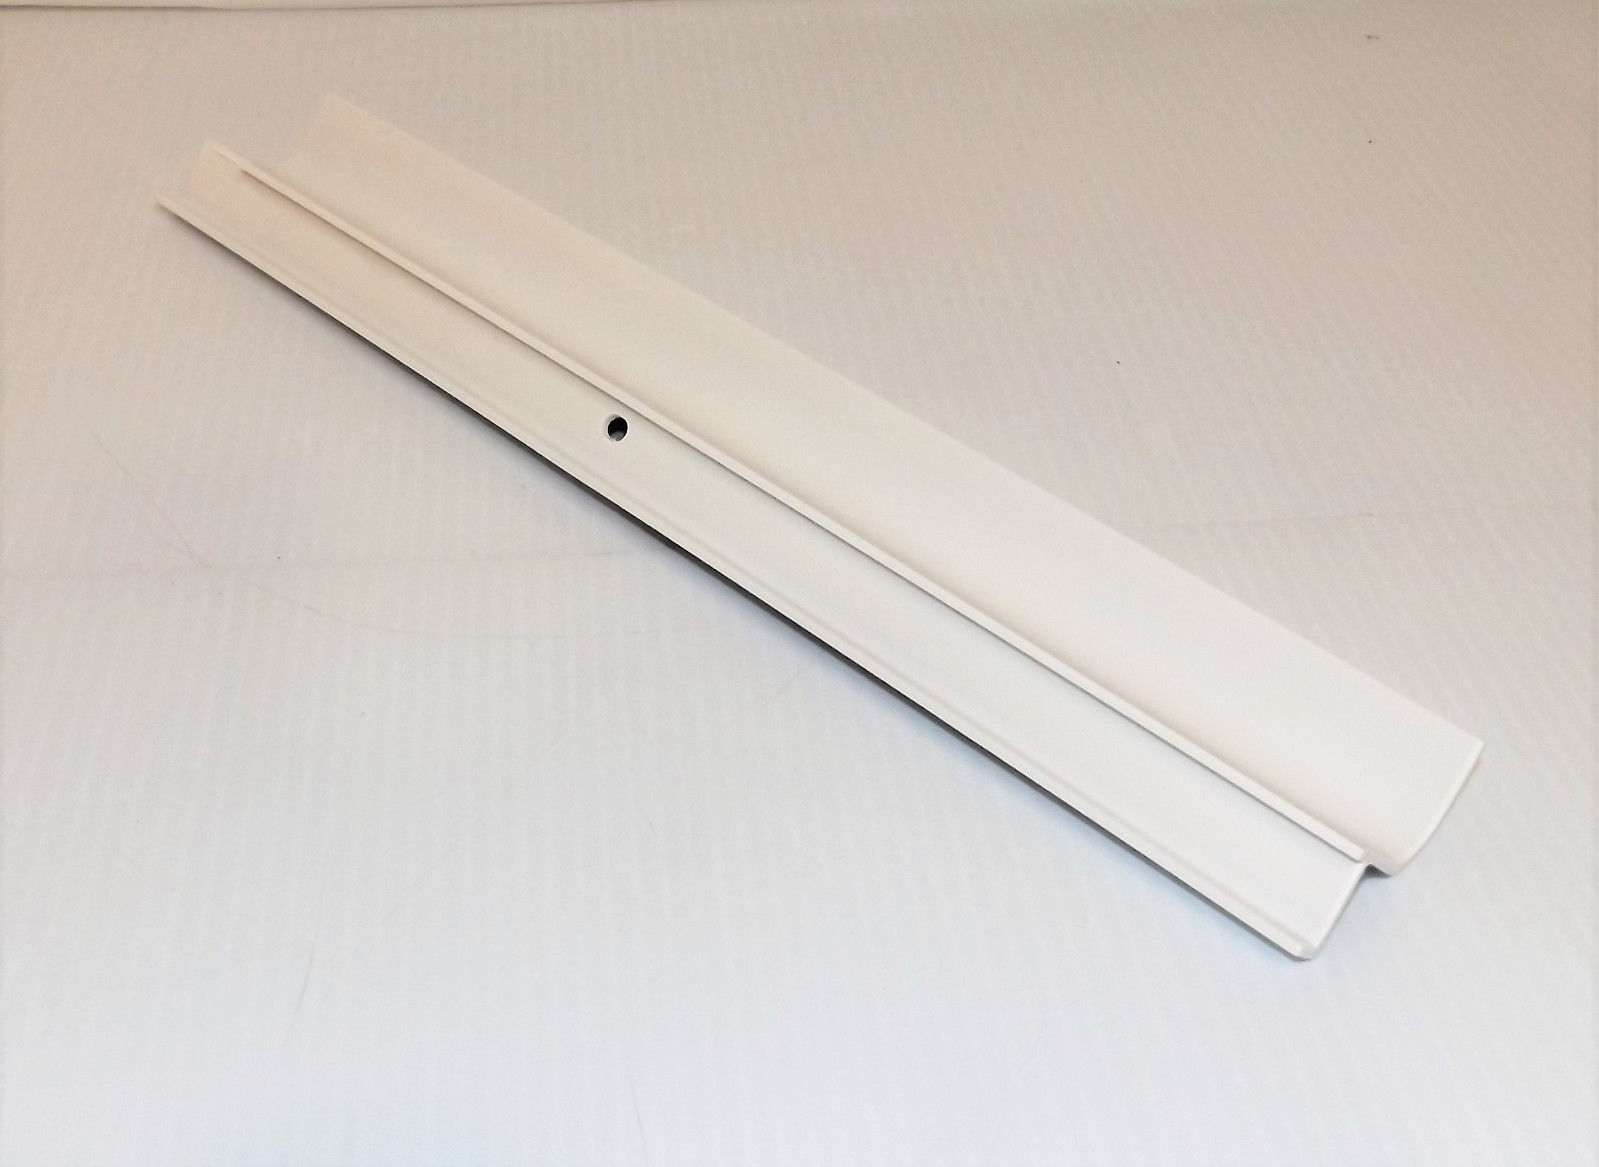 Sears Galaxy Refrigerator   Air Damper Wire Harness Cover